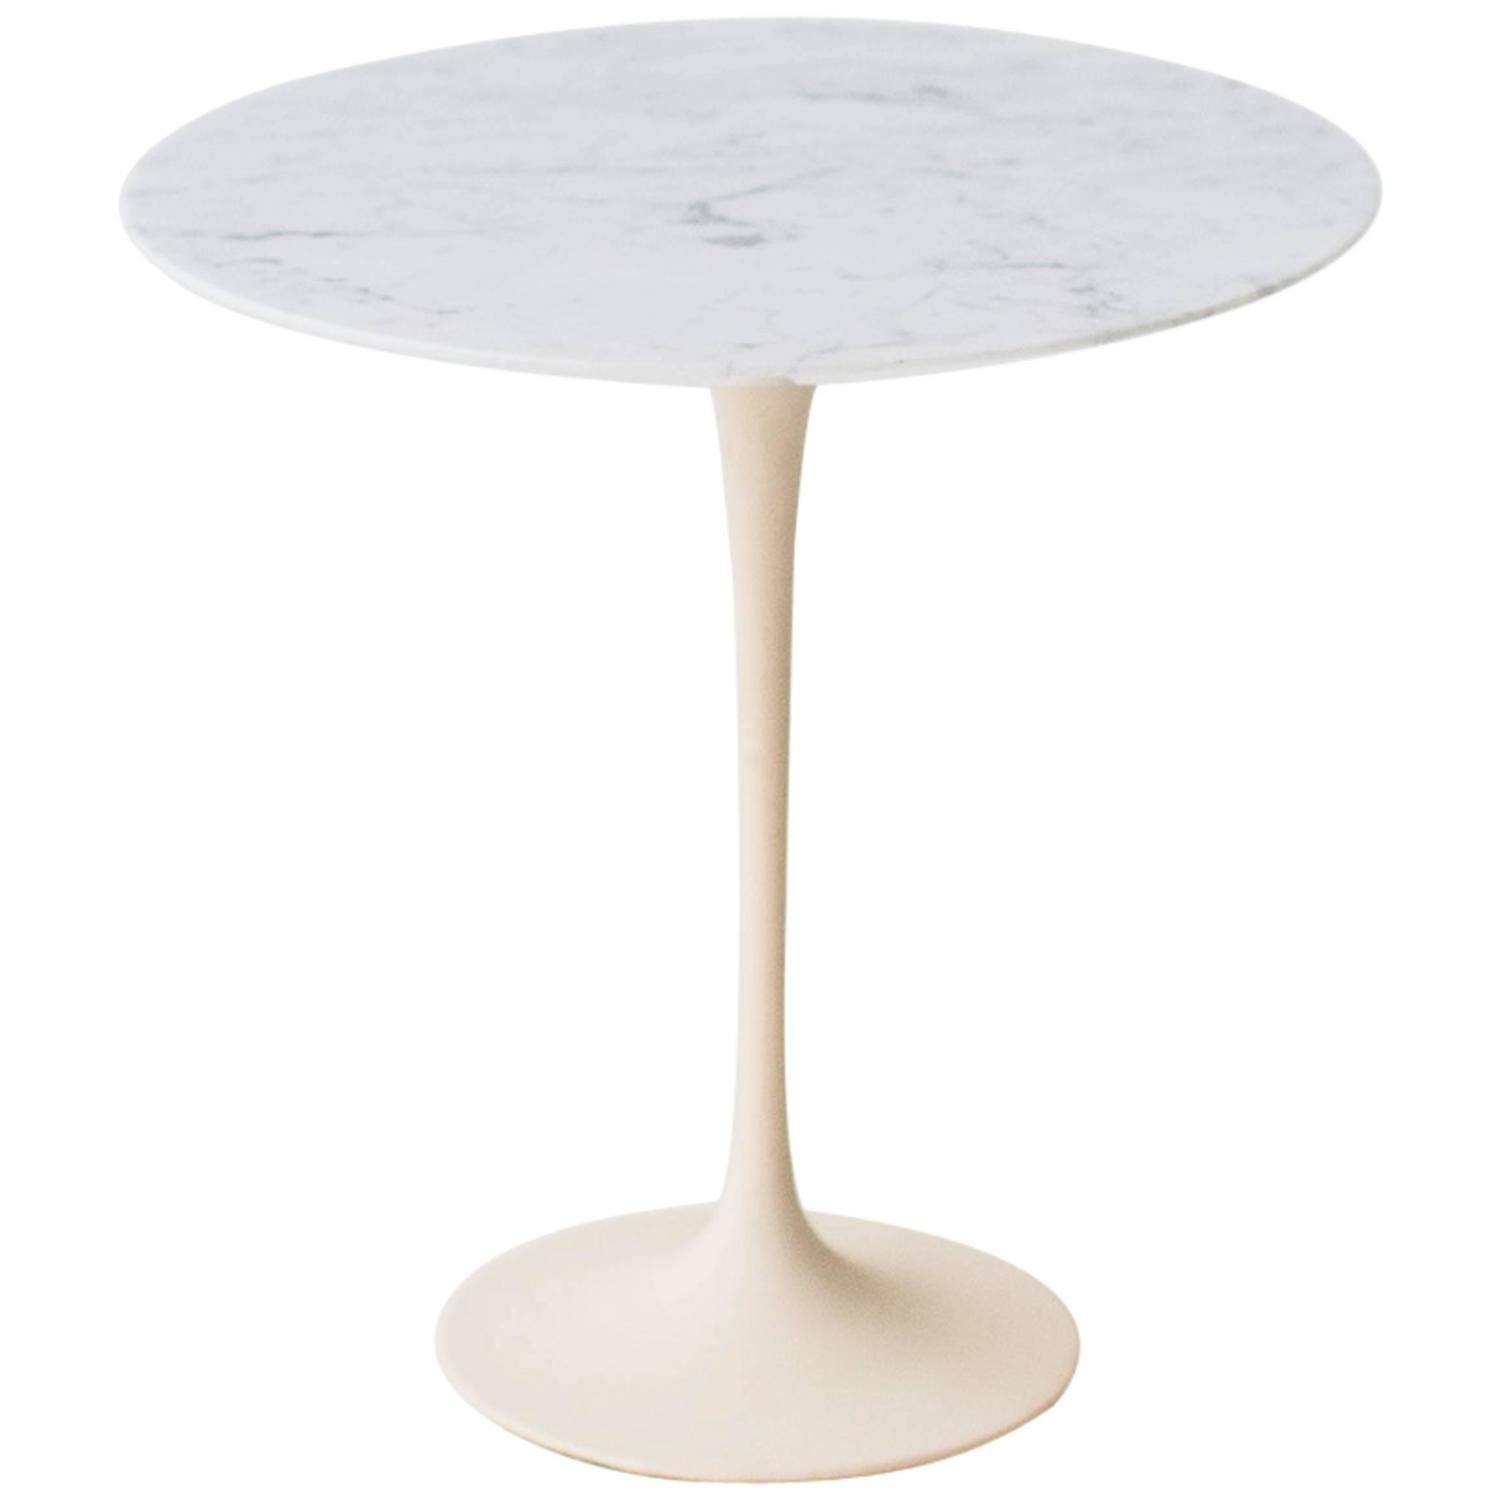 Eero Saarinen Marble Side Table for Knoll at 1stdibs